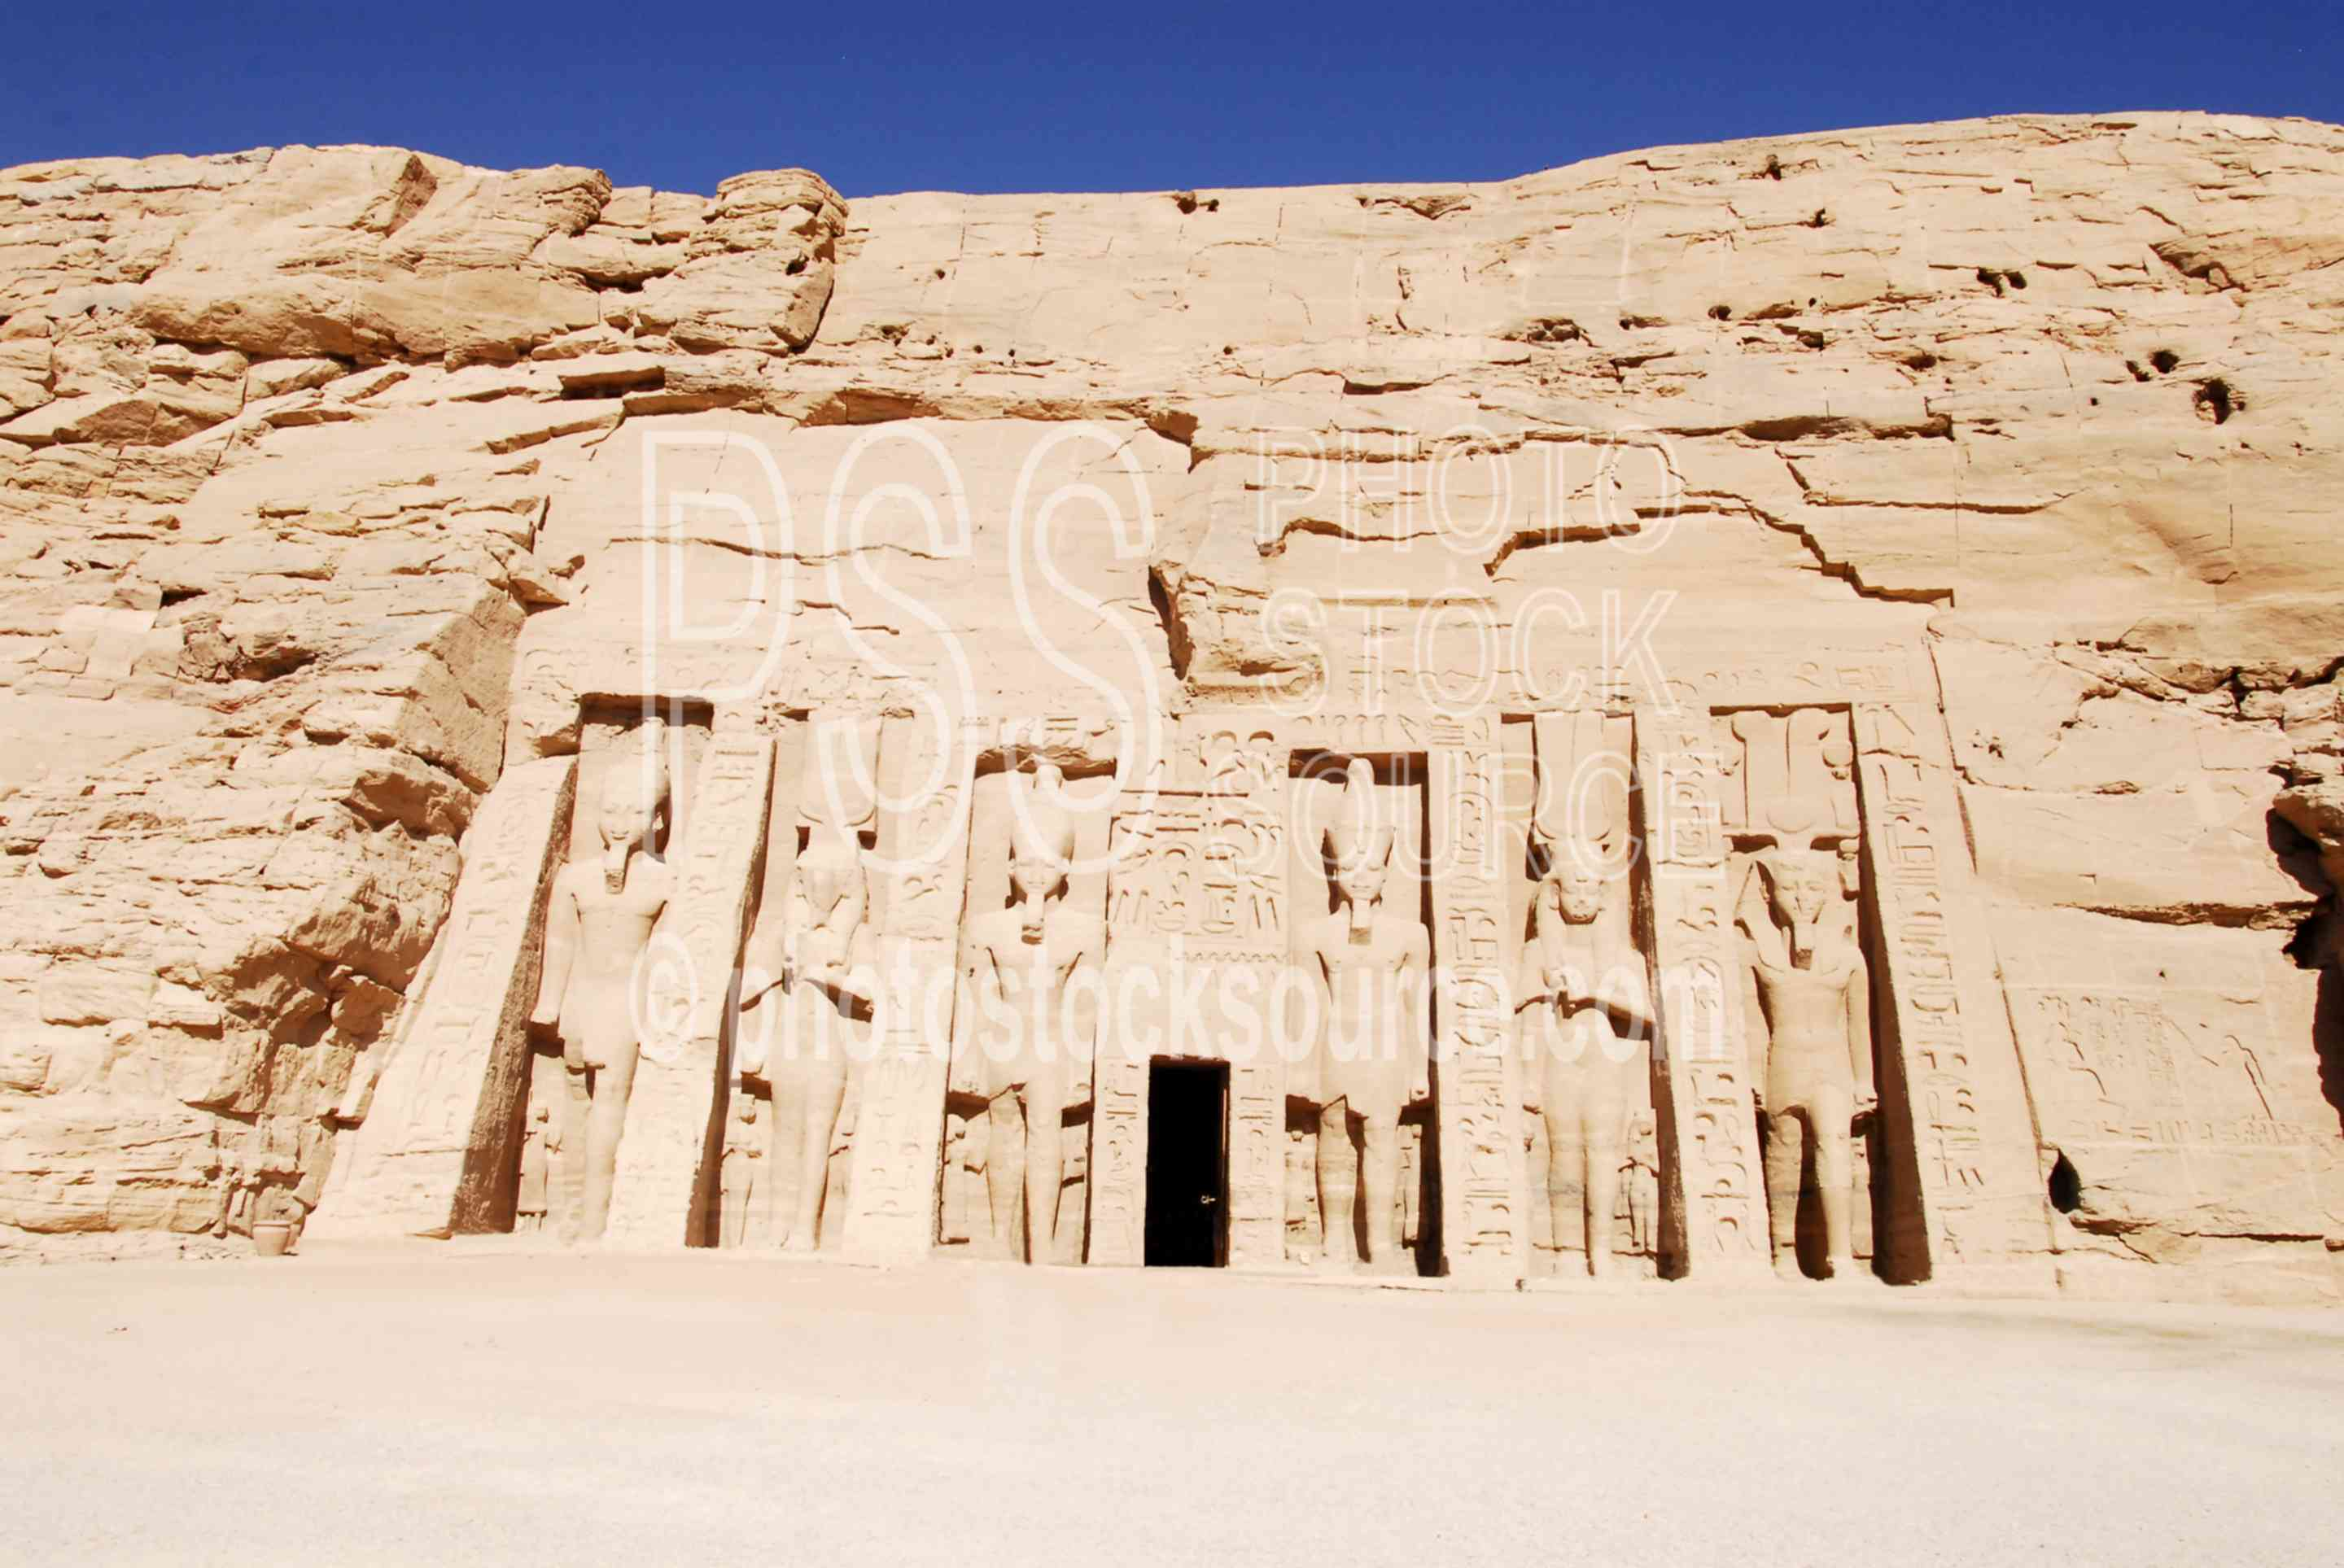 Temple of Hathor,temple,ramesses,statues,ramses,architecture,temples